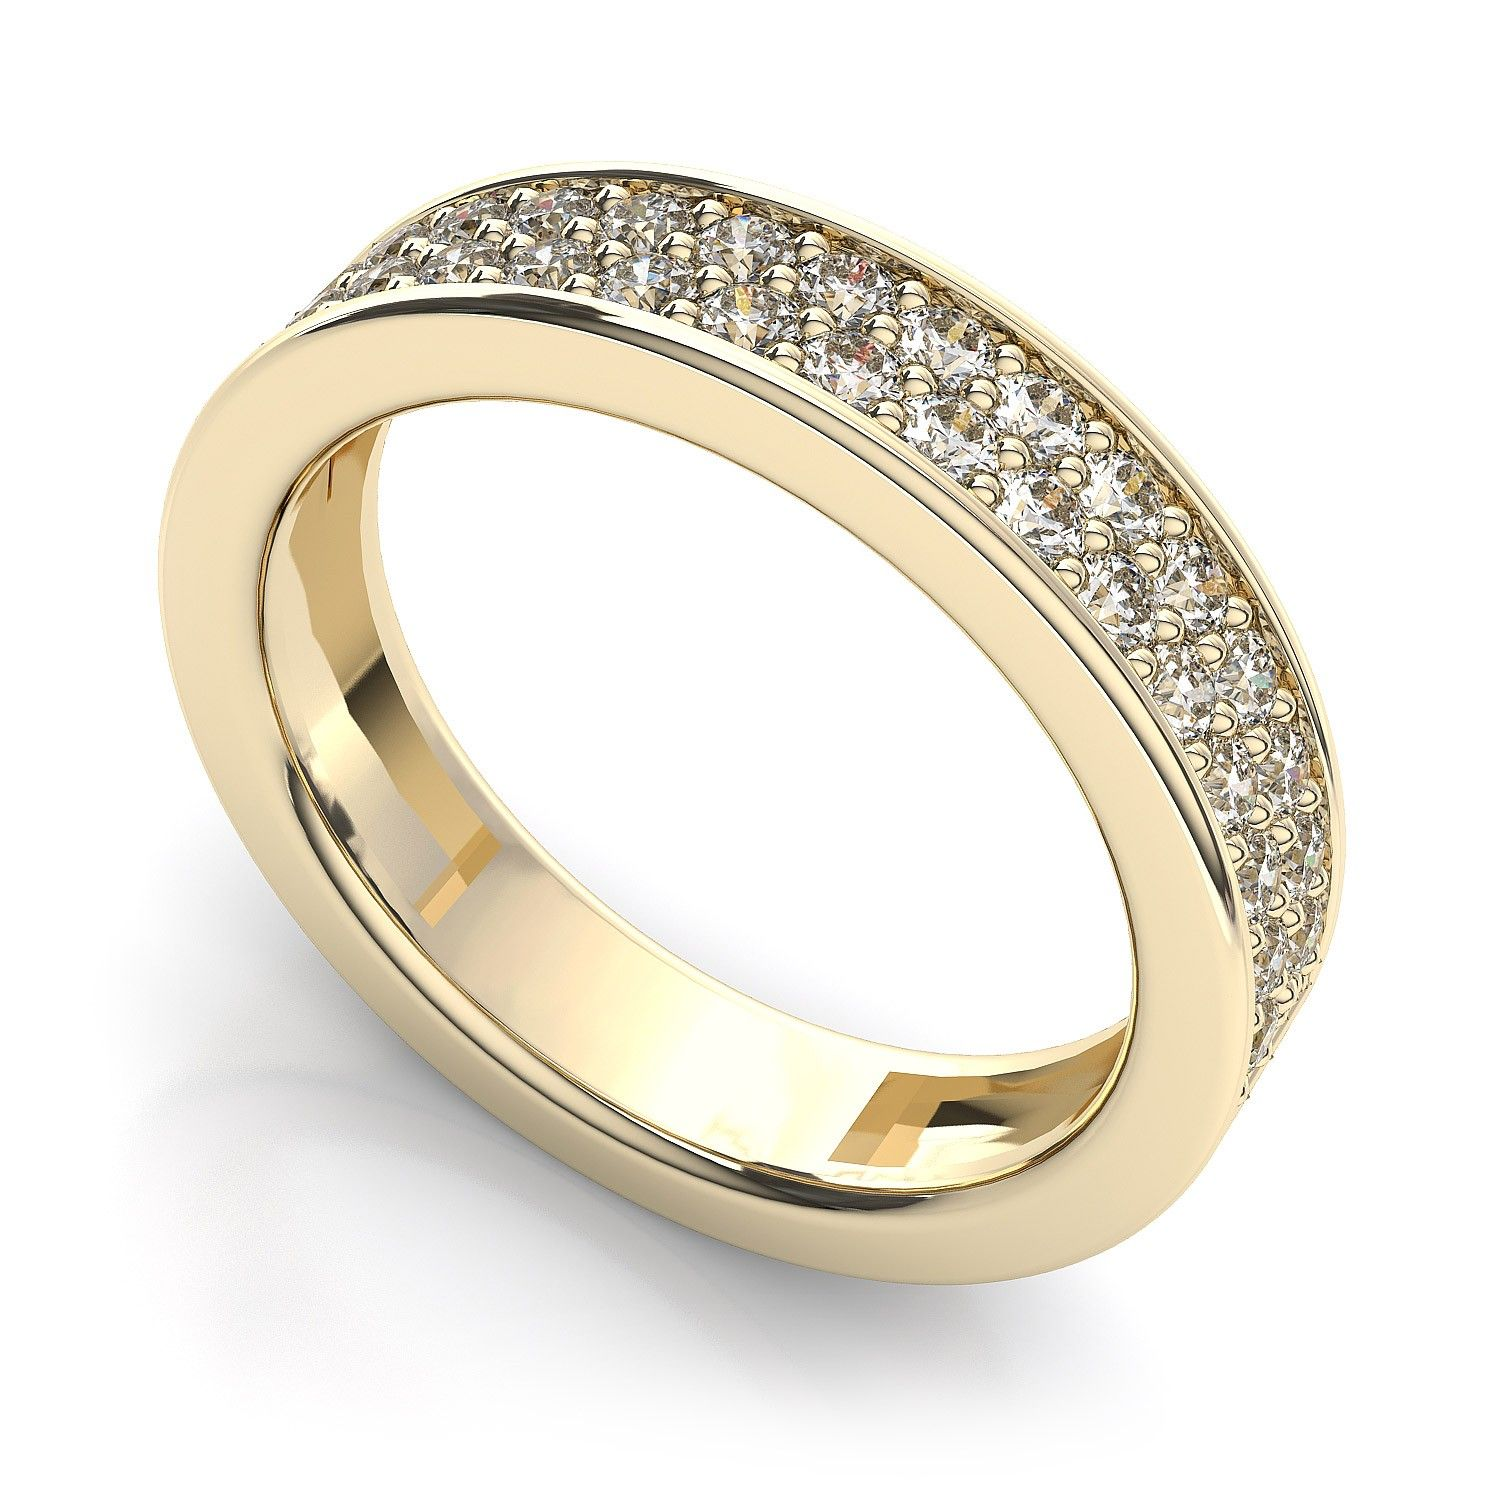 Women's full eternity ring set with two rows of diamonds